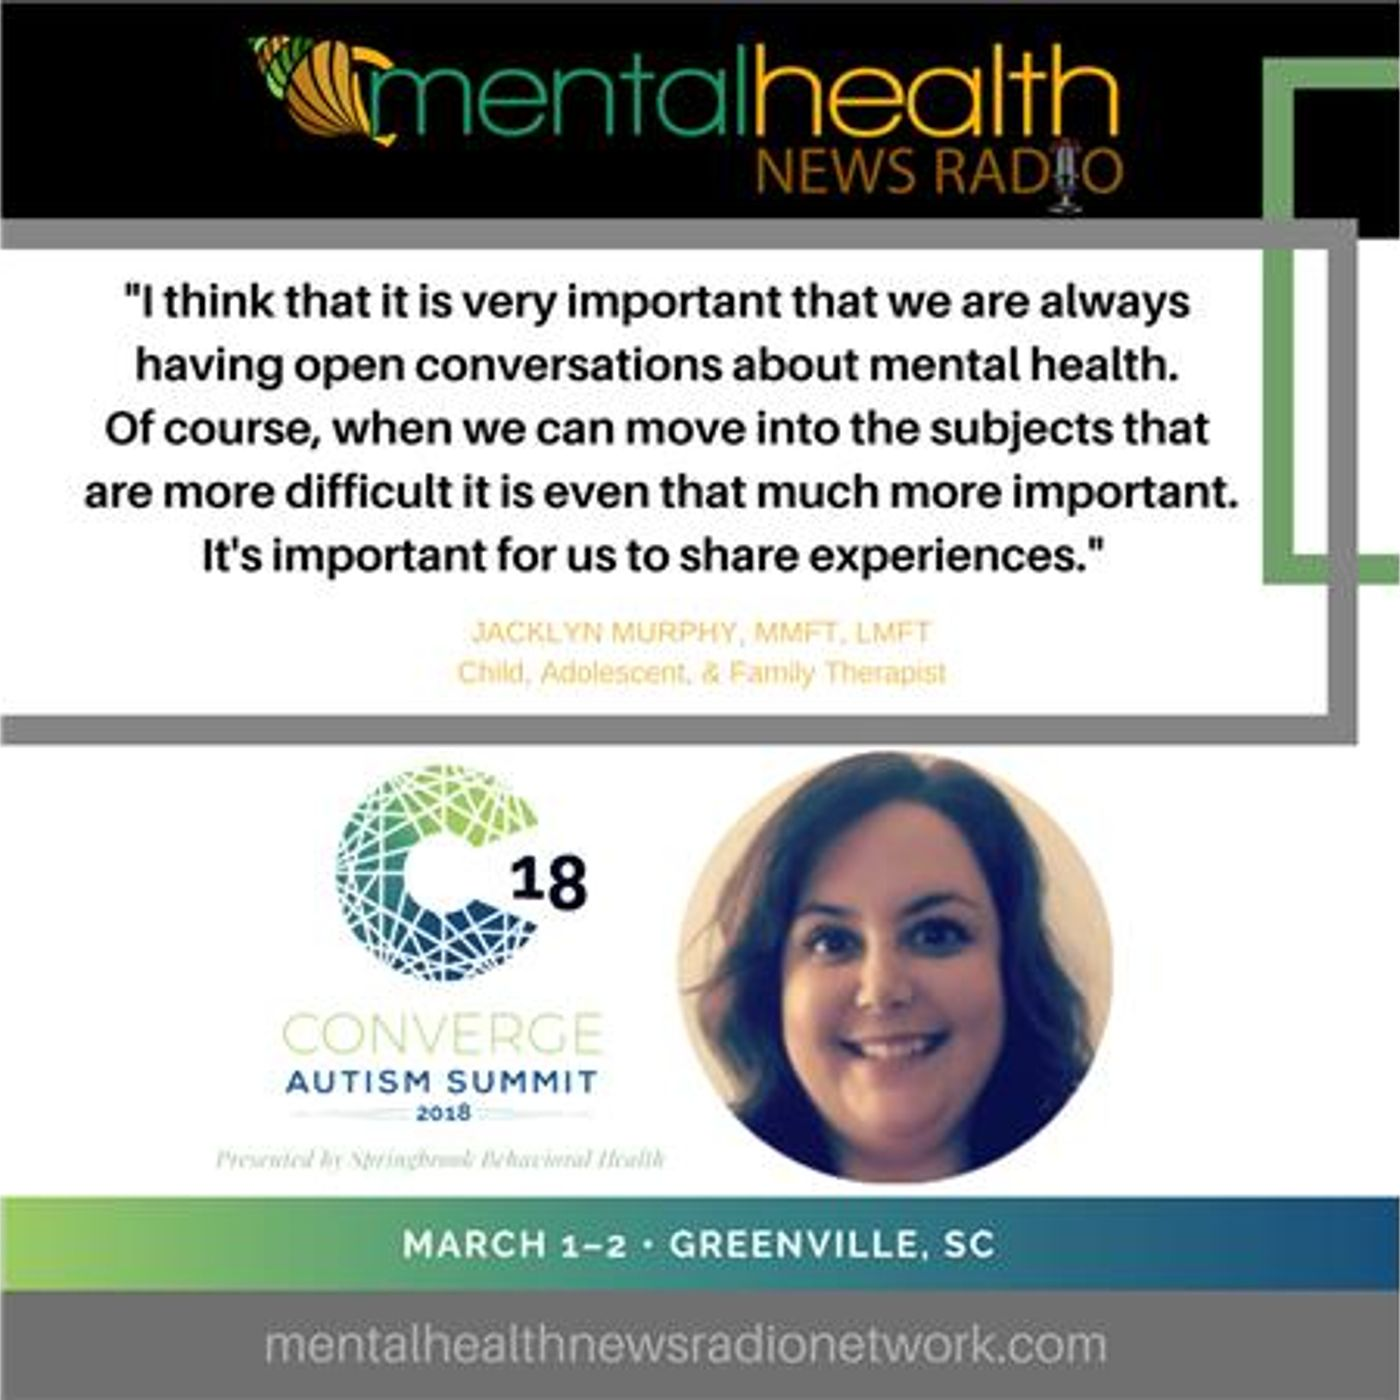 Mental Health News Radio - Sexual Awareness and Autism Spectrum Disorder with Jacklyn Murphy